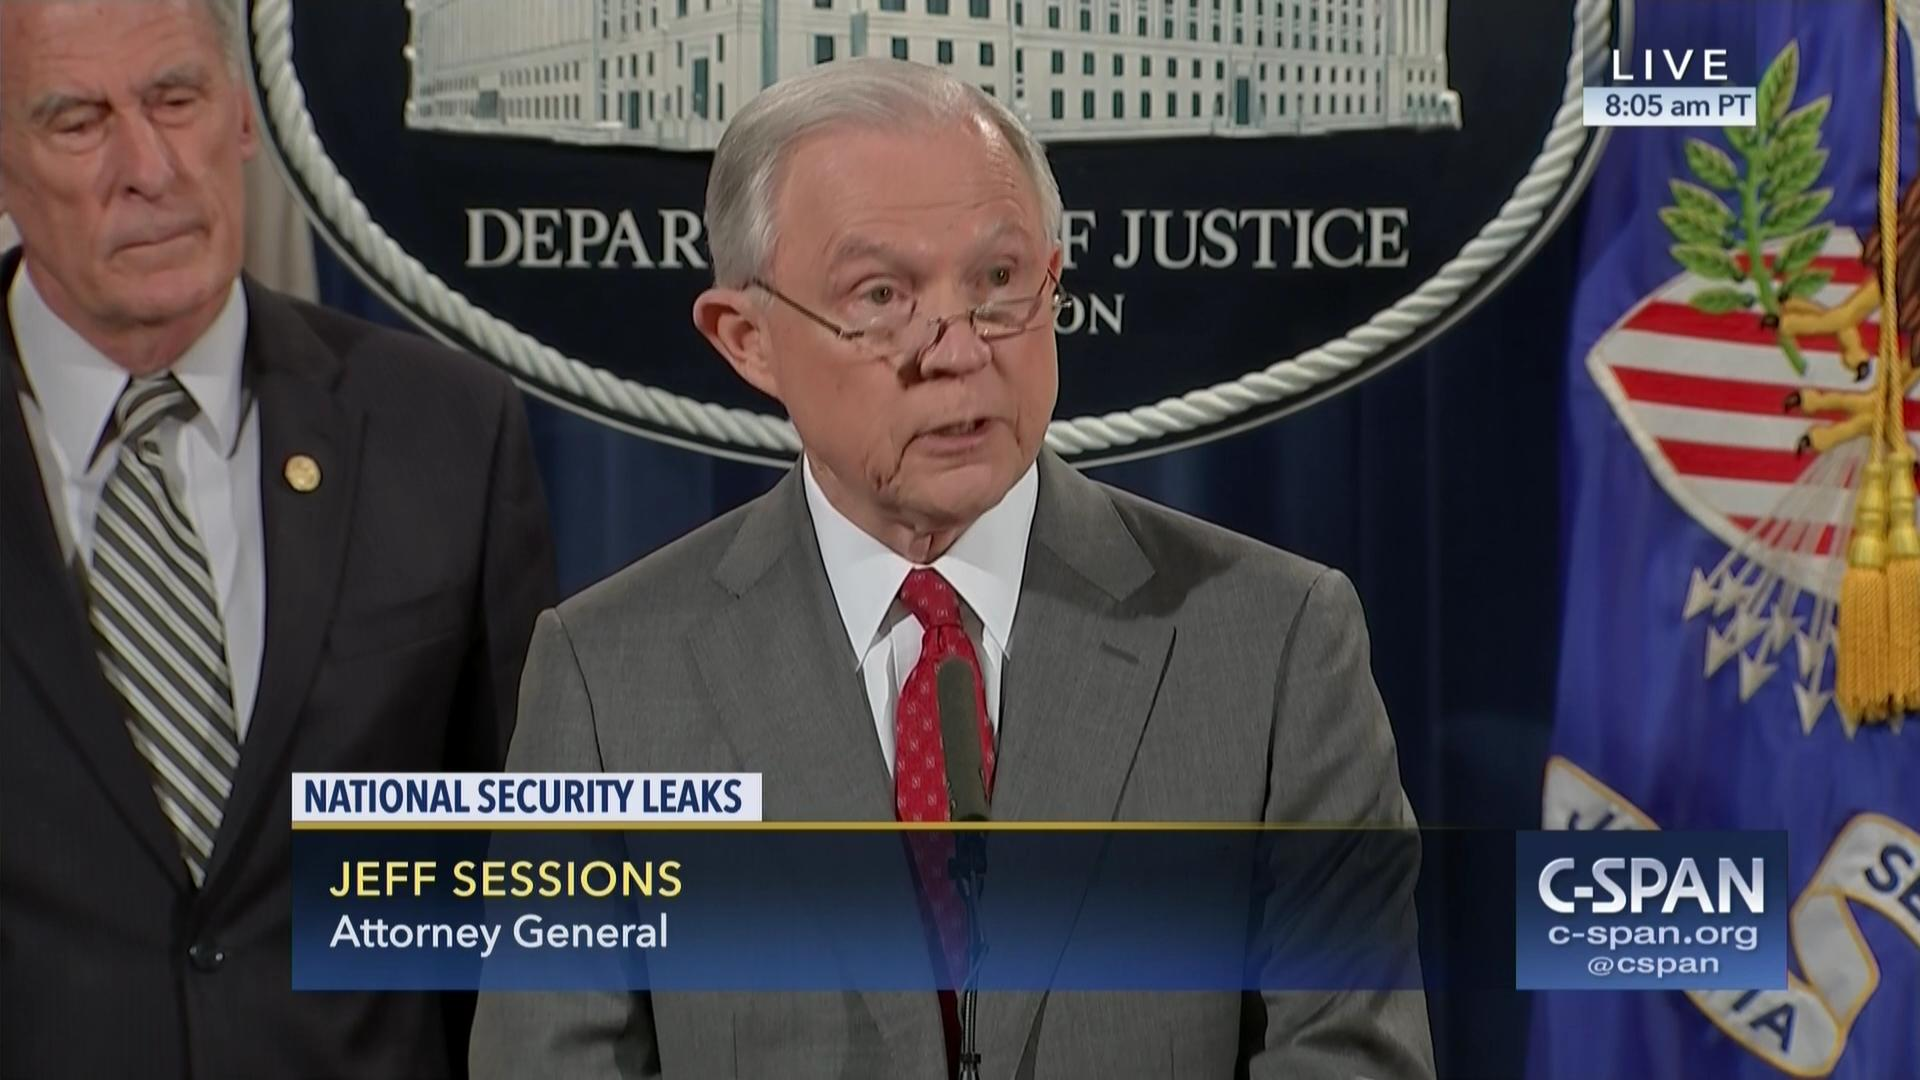 Attorney General Culture Leaking Stop, Aug 4 2017 | Video | C-SPAN.org